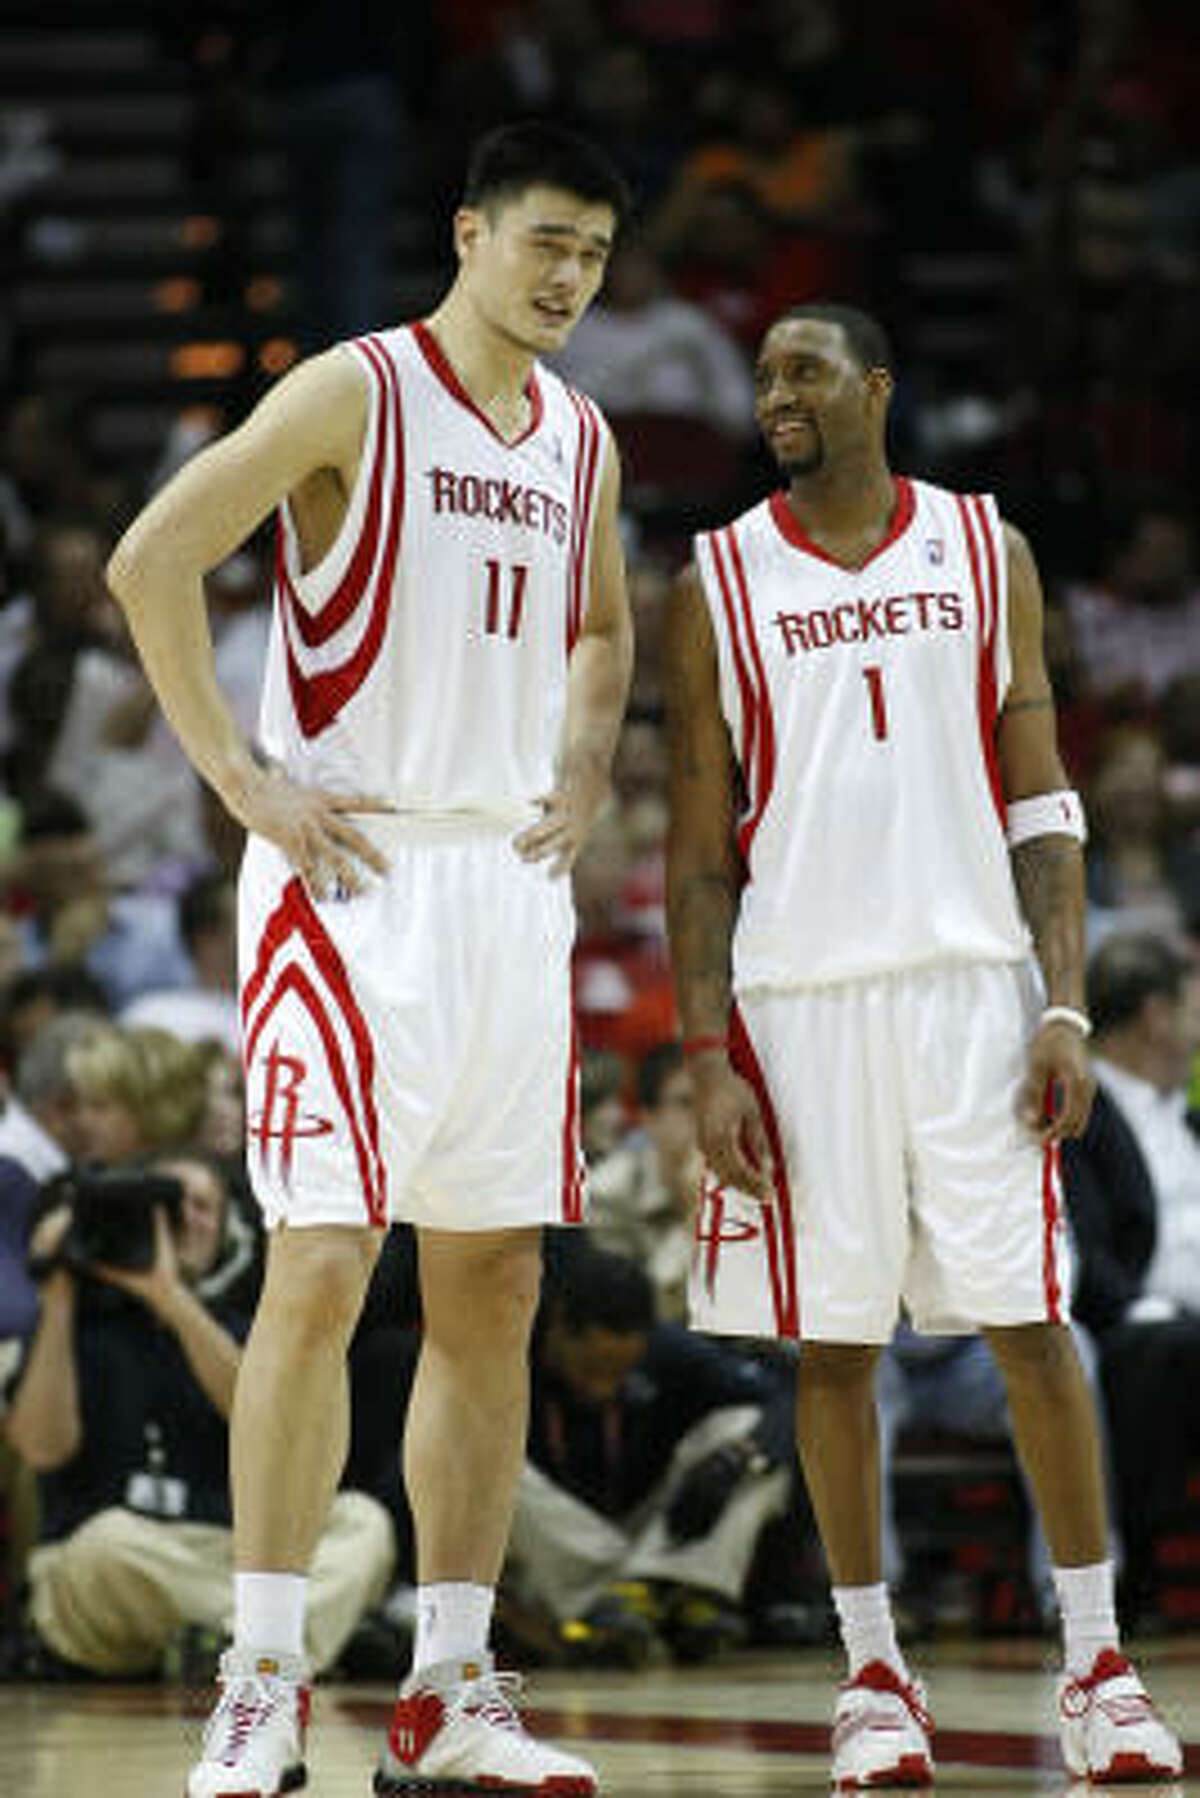 Yao Ming and Tracy McGrady are estimated to earn $21.5 million and $6 million, respectively, this year in various endorsement deals.